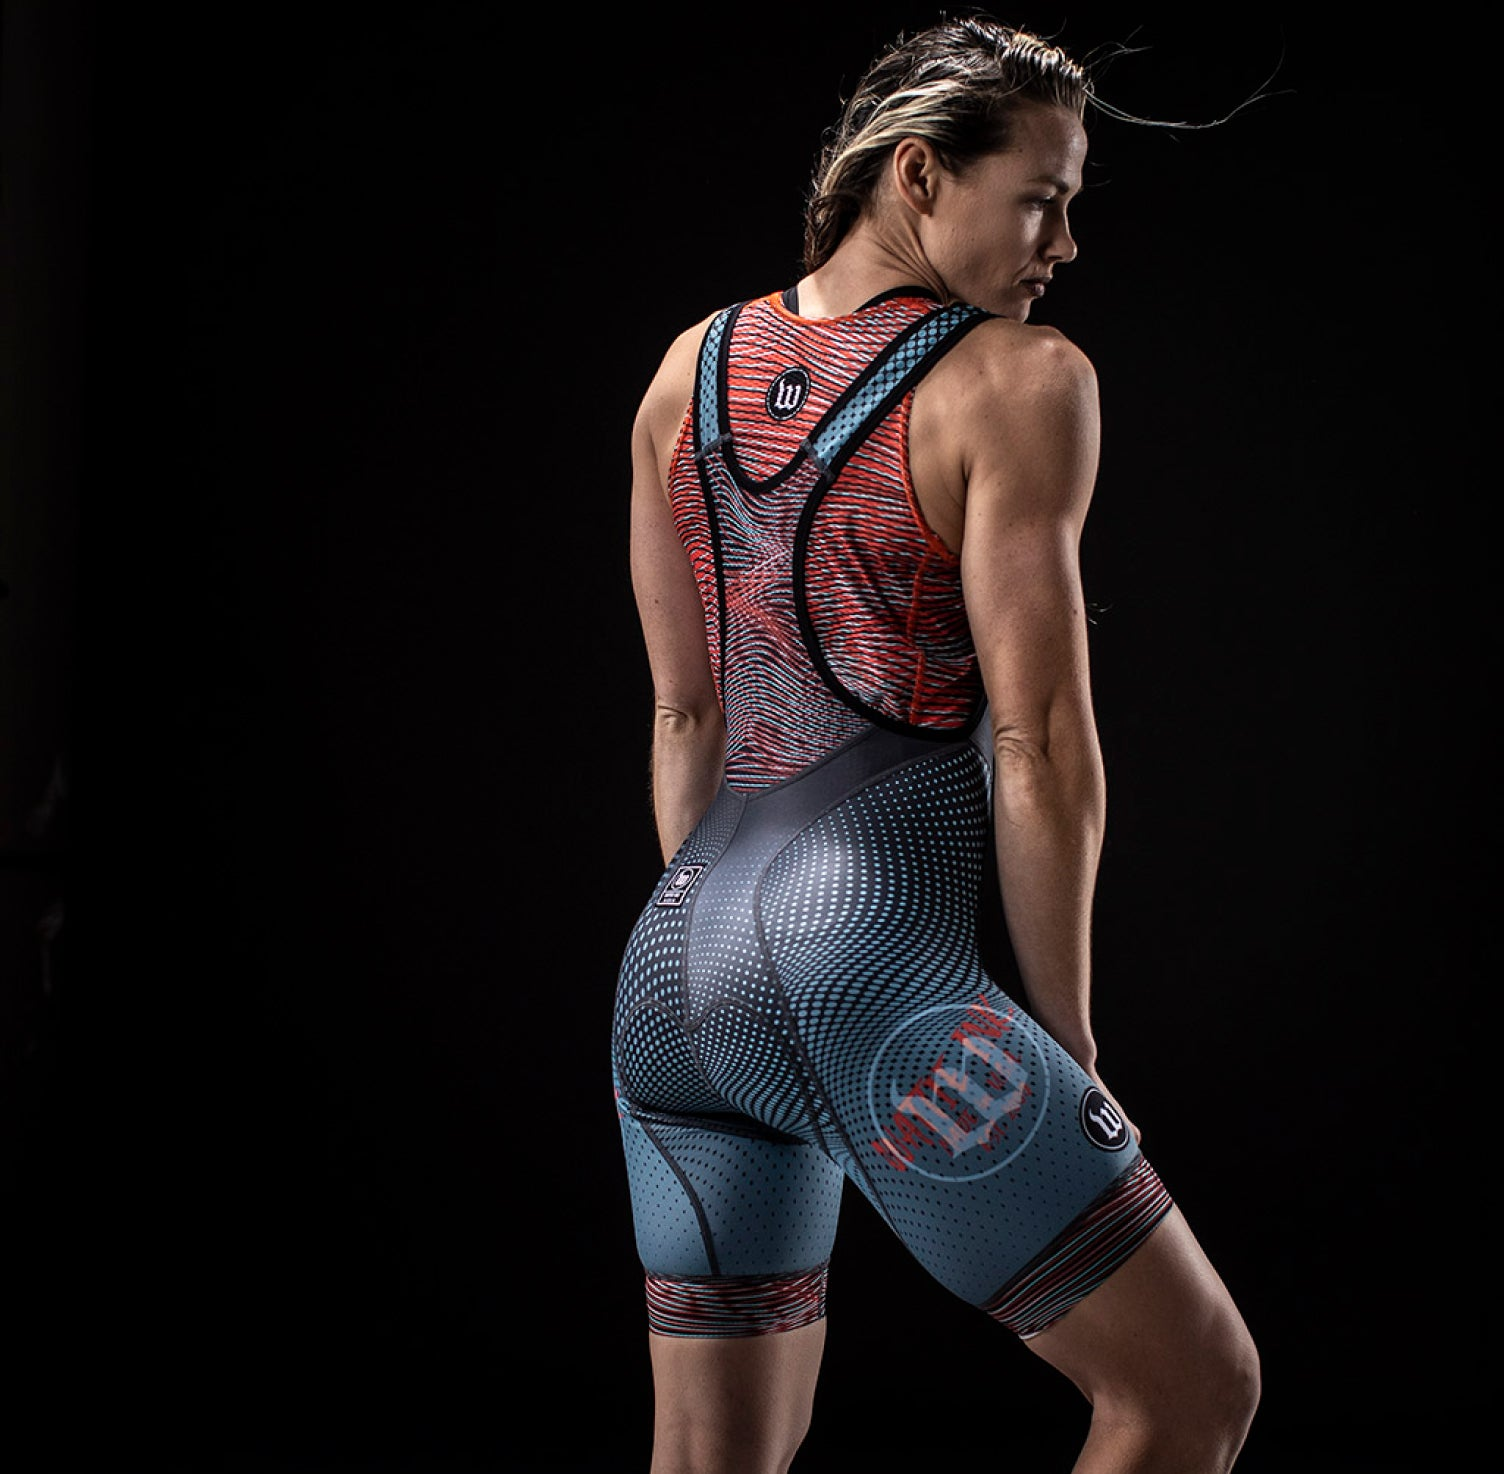 women in cycling suit in her back